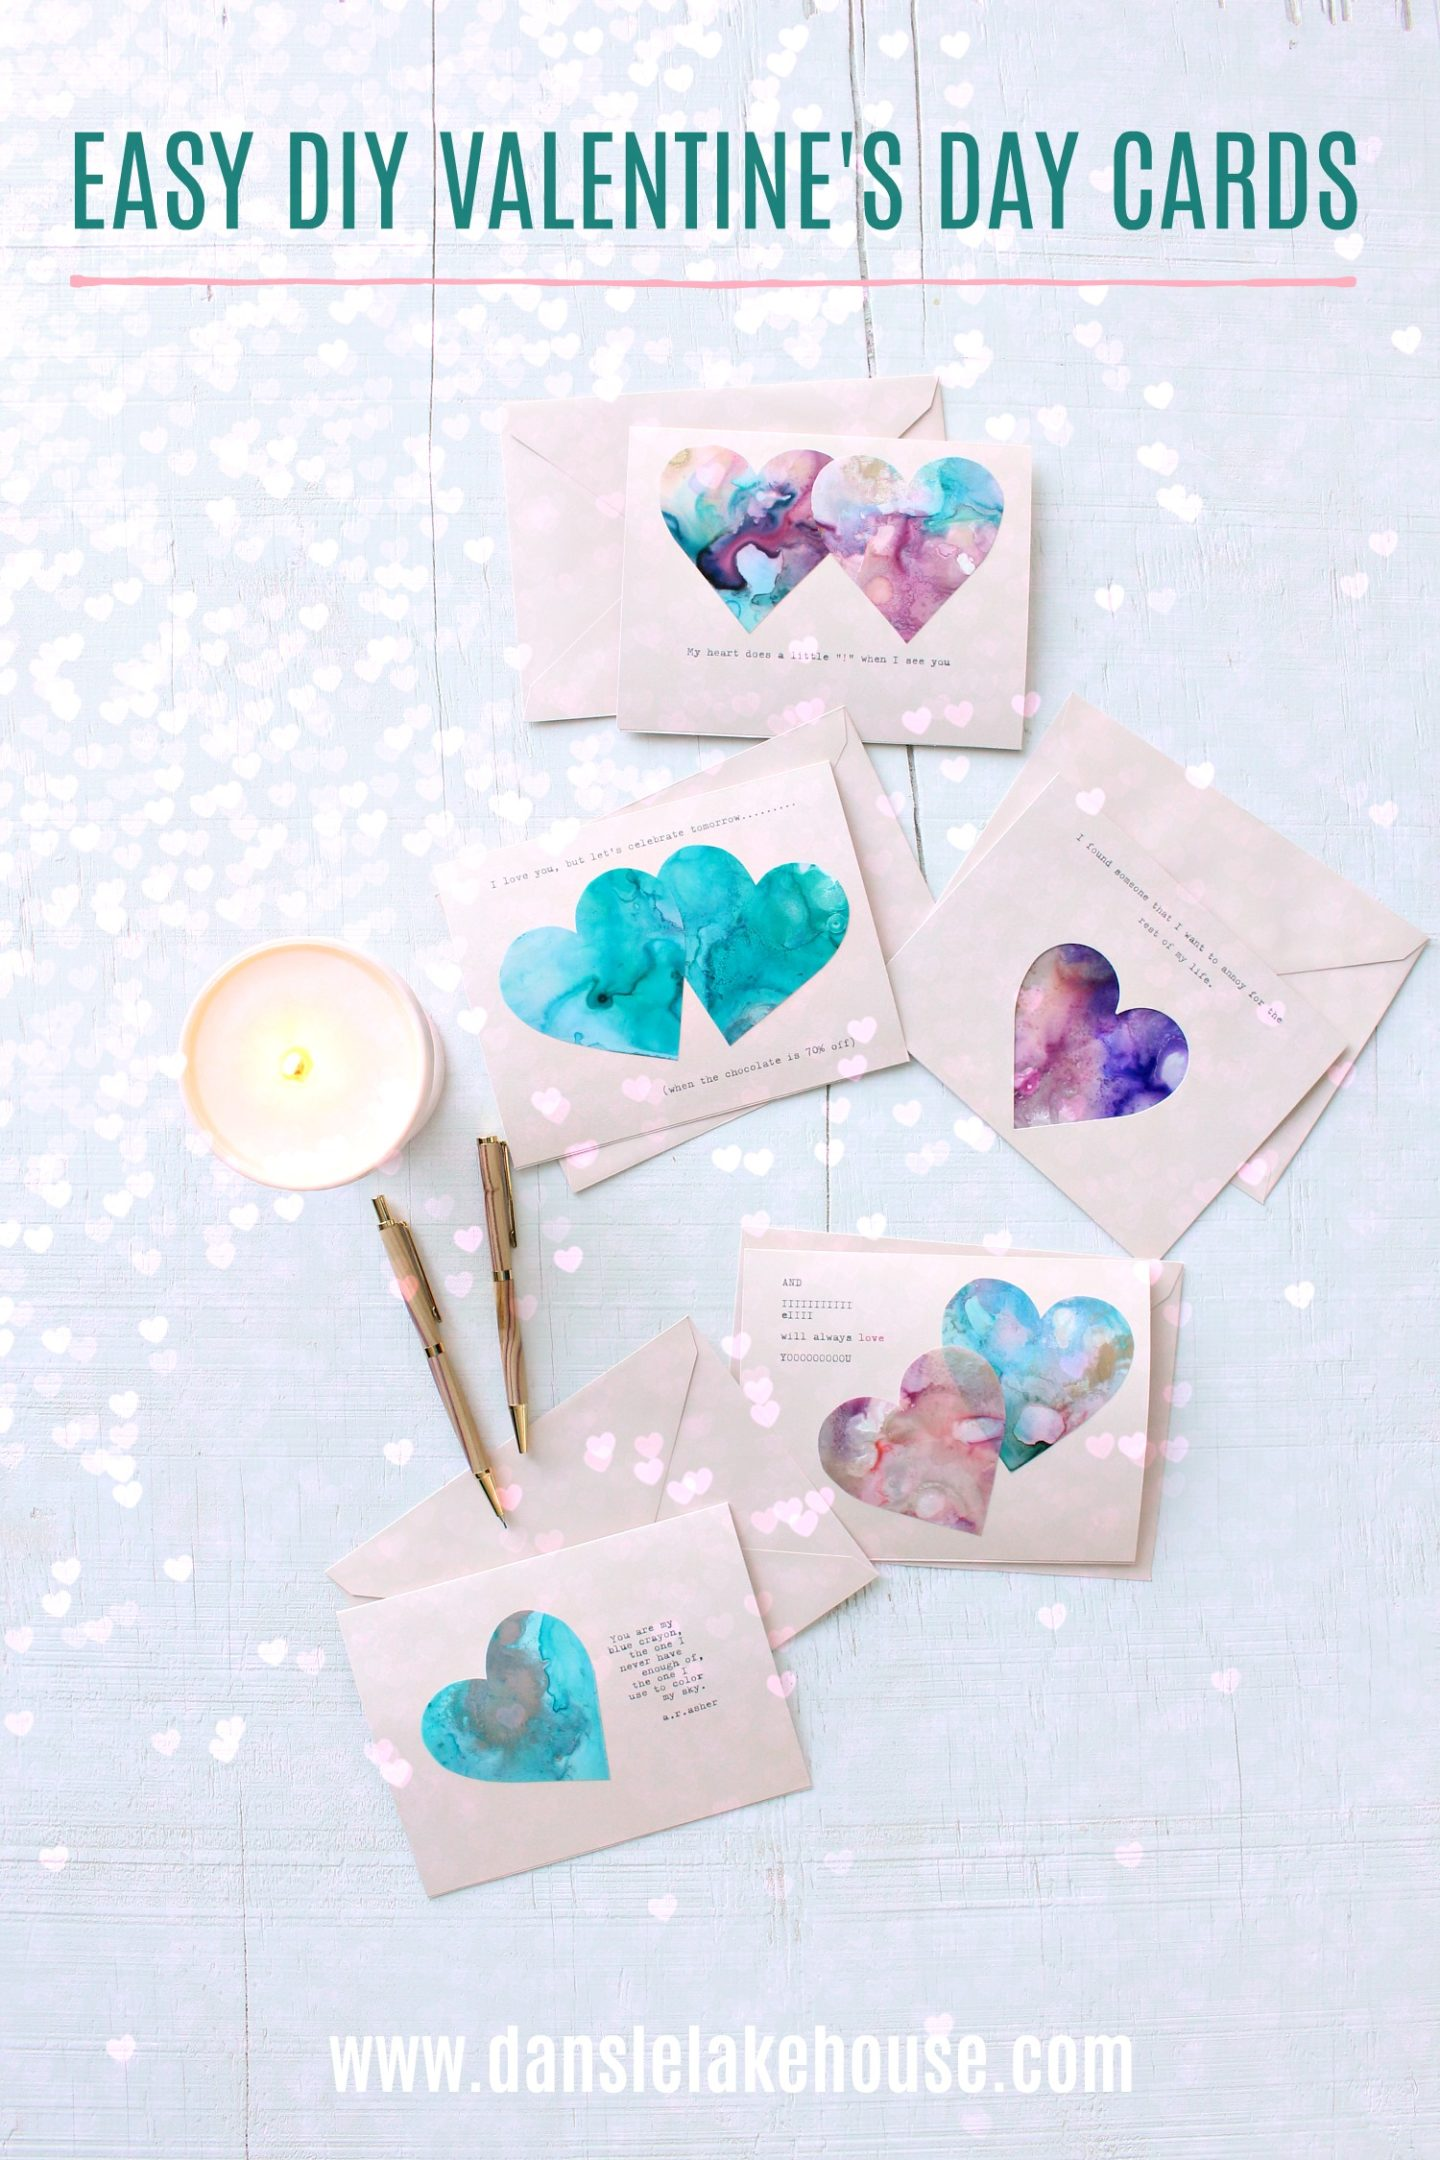 Easy DIY Valentine's Day Cards Using Alcohol Inks